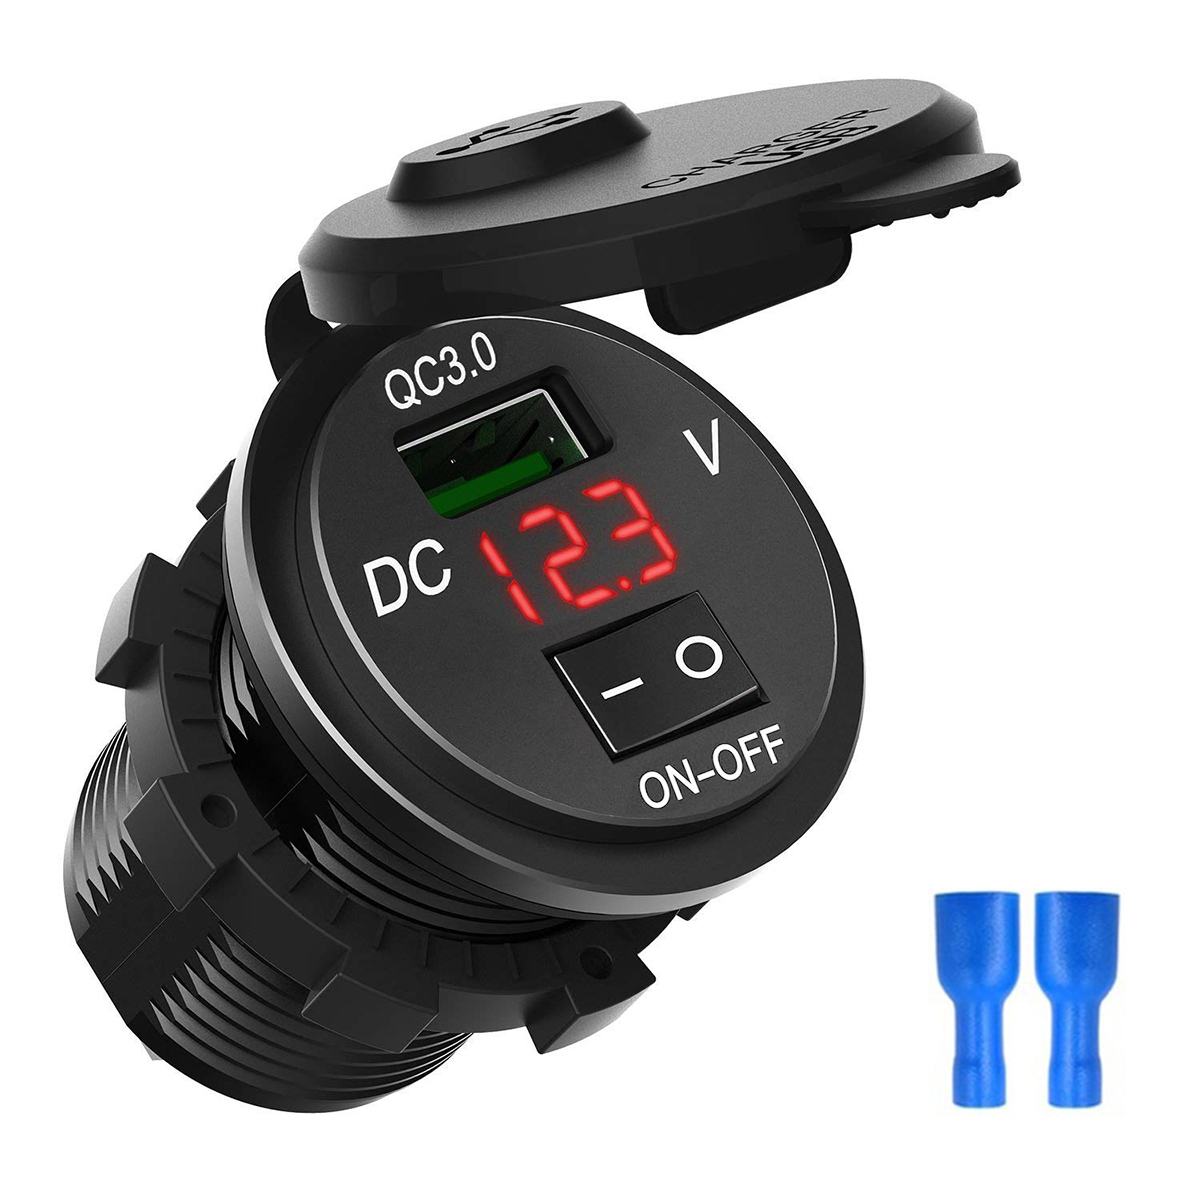 Quick Charge 3 0 USB Car Charger Socket Digital Display Voltmeter USB Charger Socket with ON-OFF Switch for Car Motorcycle ATV